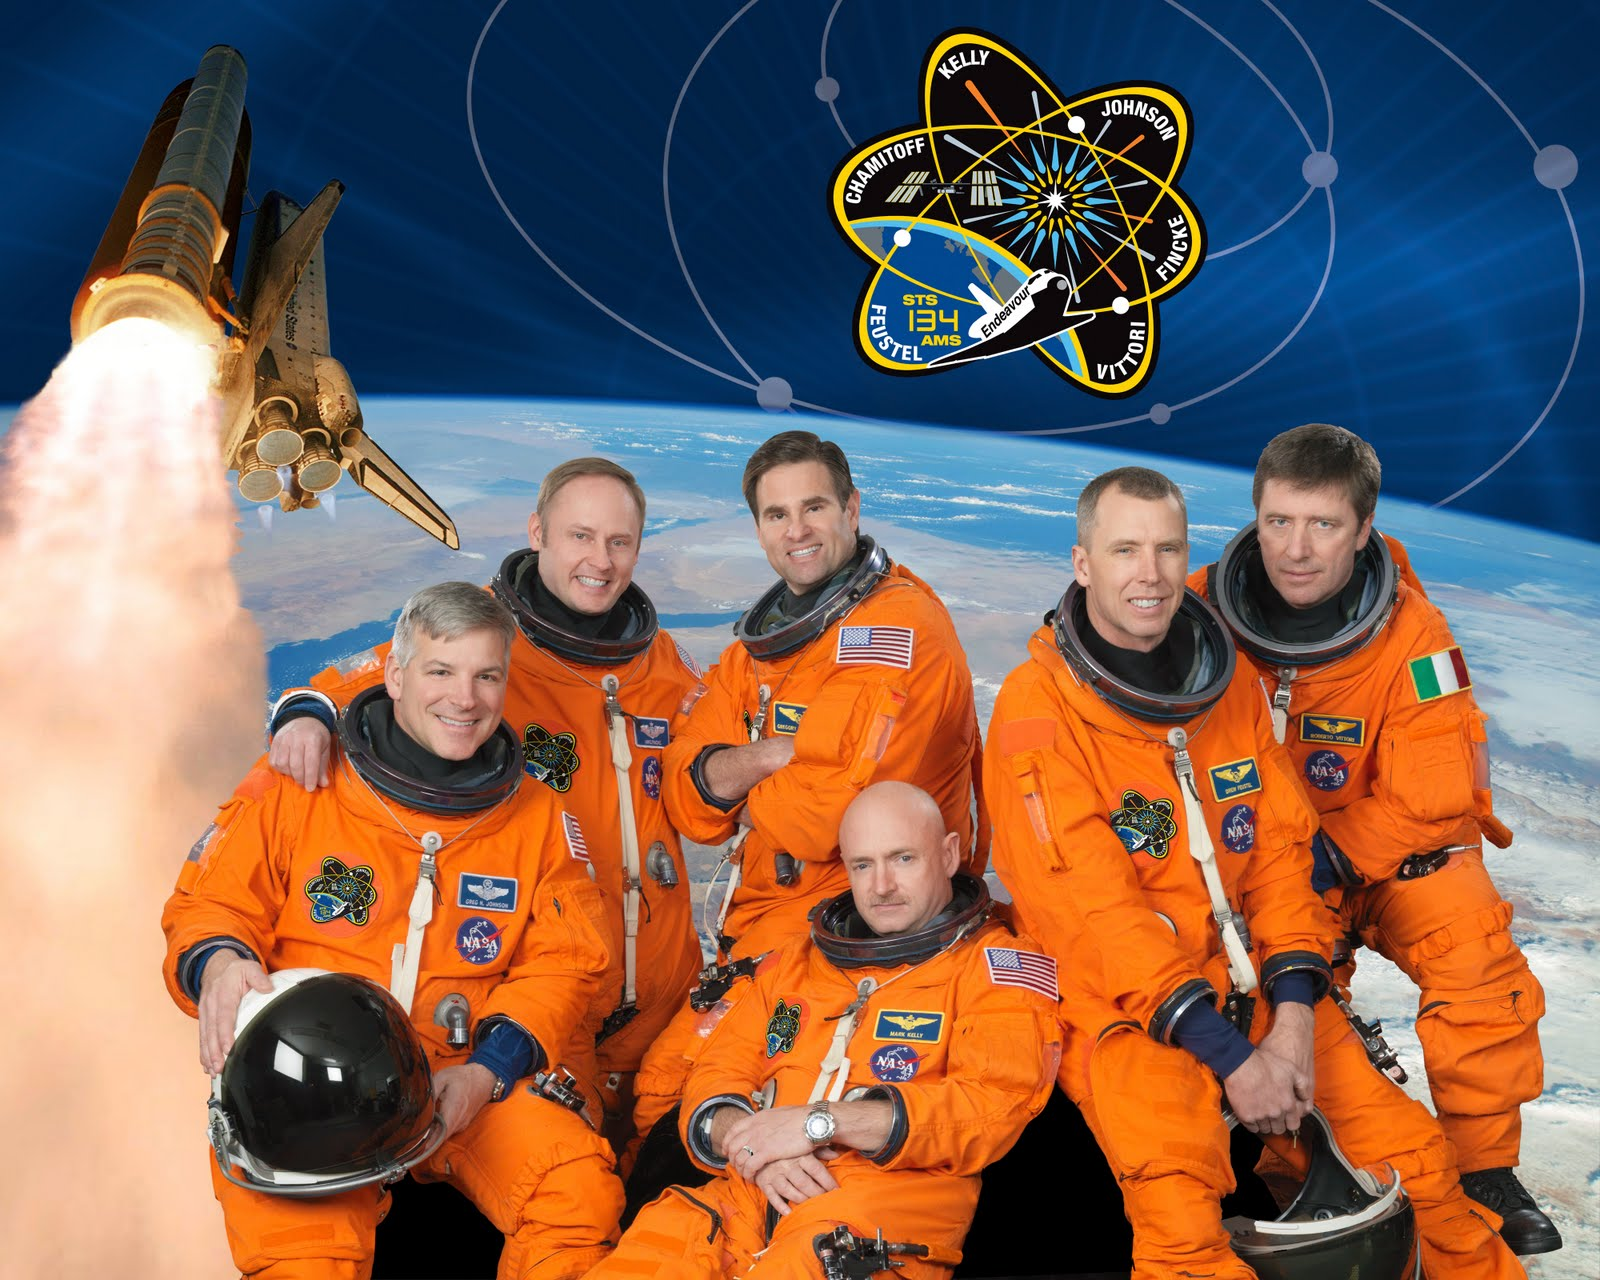 space shuttle endeavour astronauts - photo #1